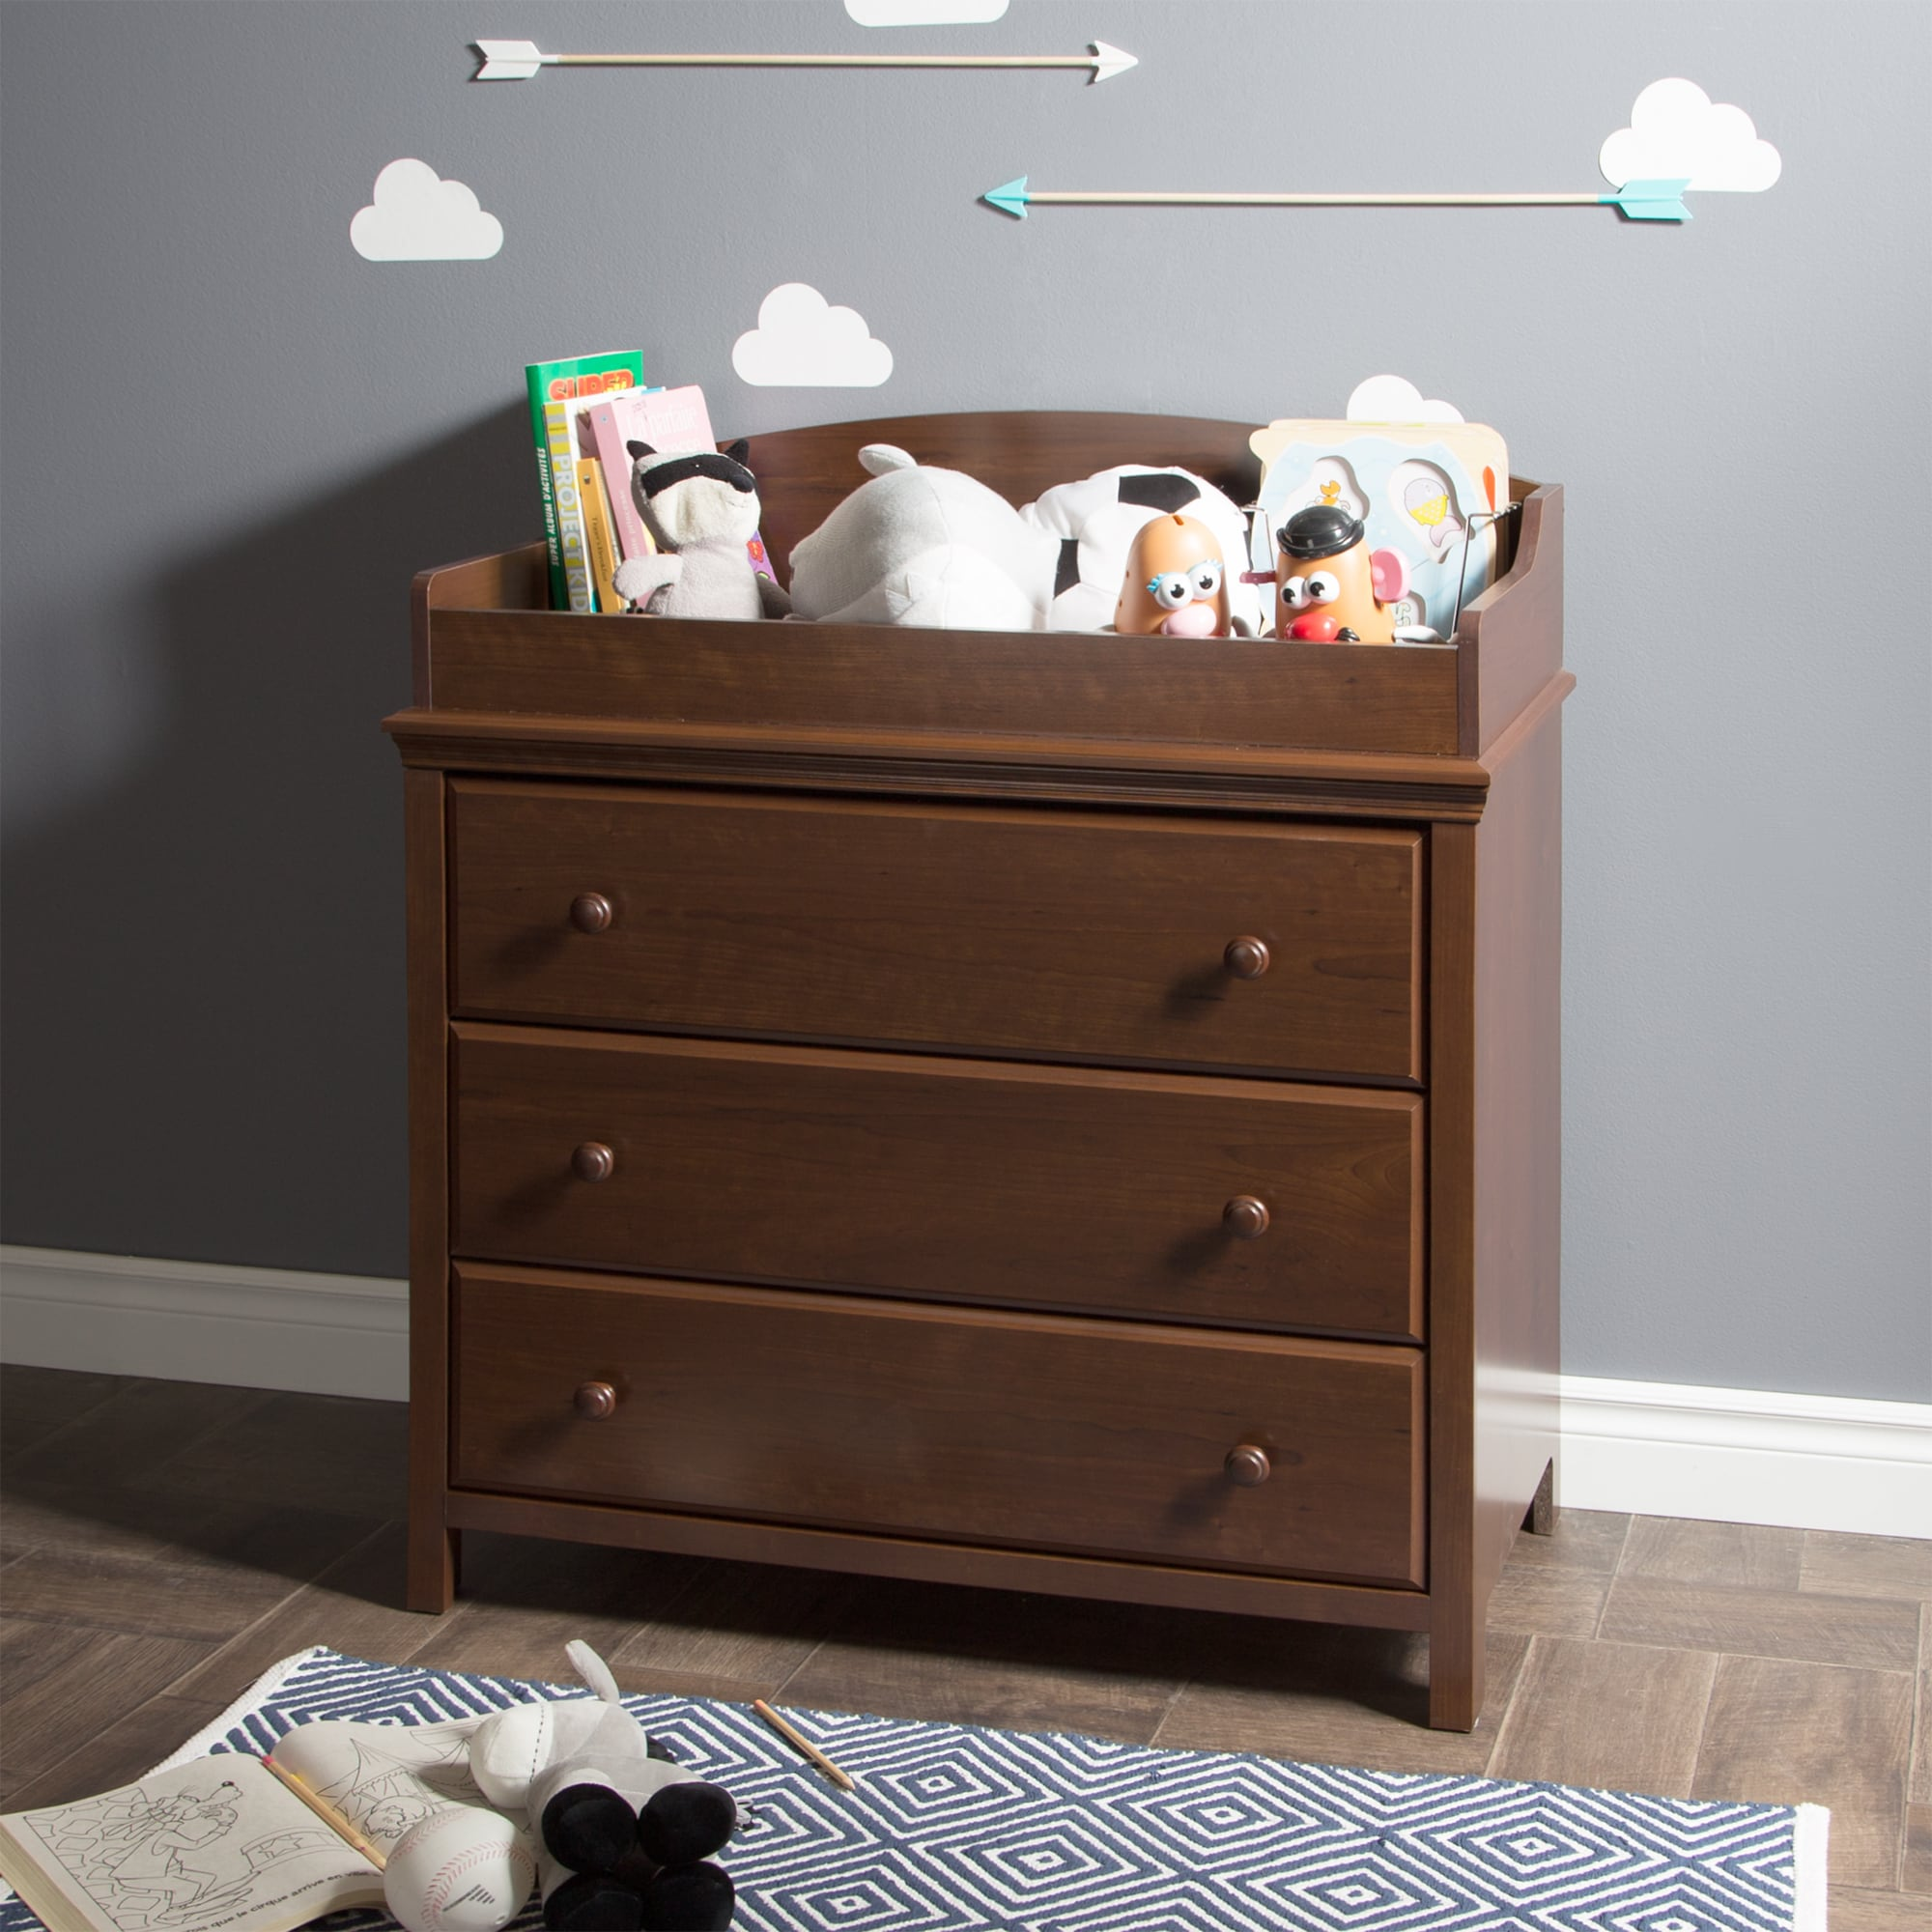 Gentil Shop South Shore Cotton Candy Changing Table With Drawers   Free Shipping  Today   Overstock.com   10429305